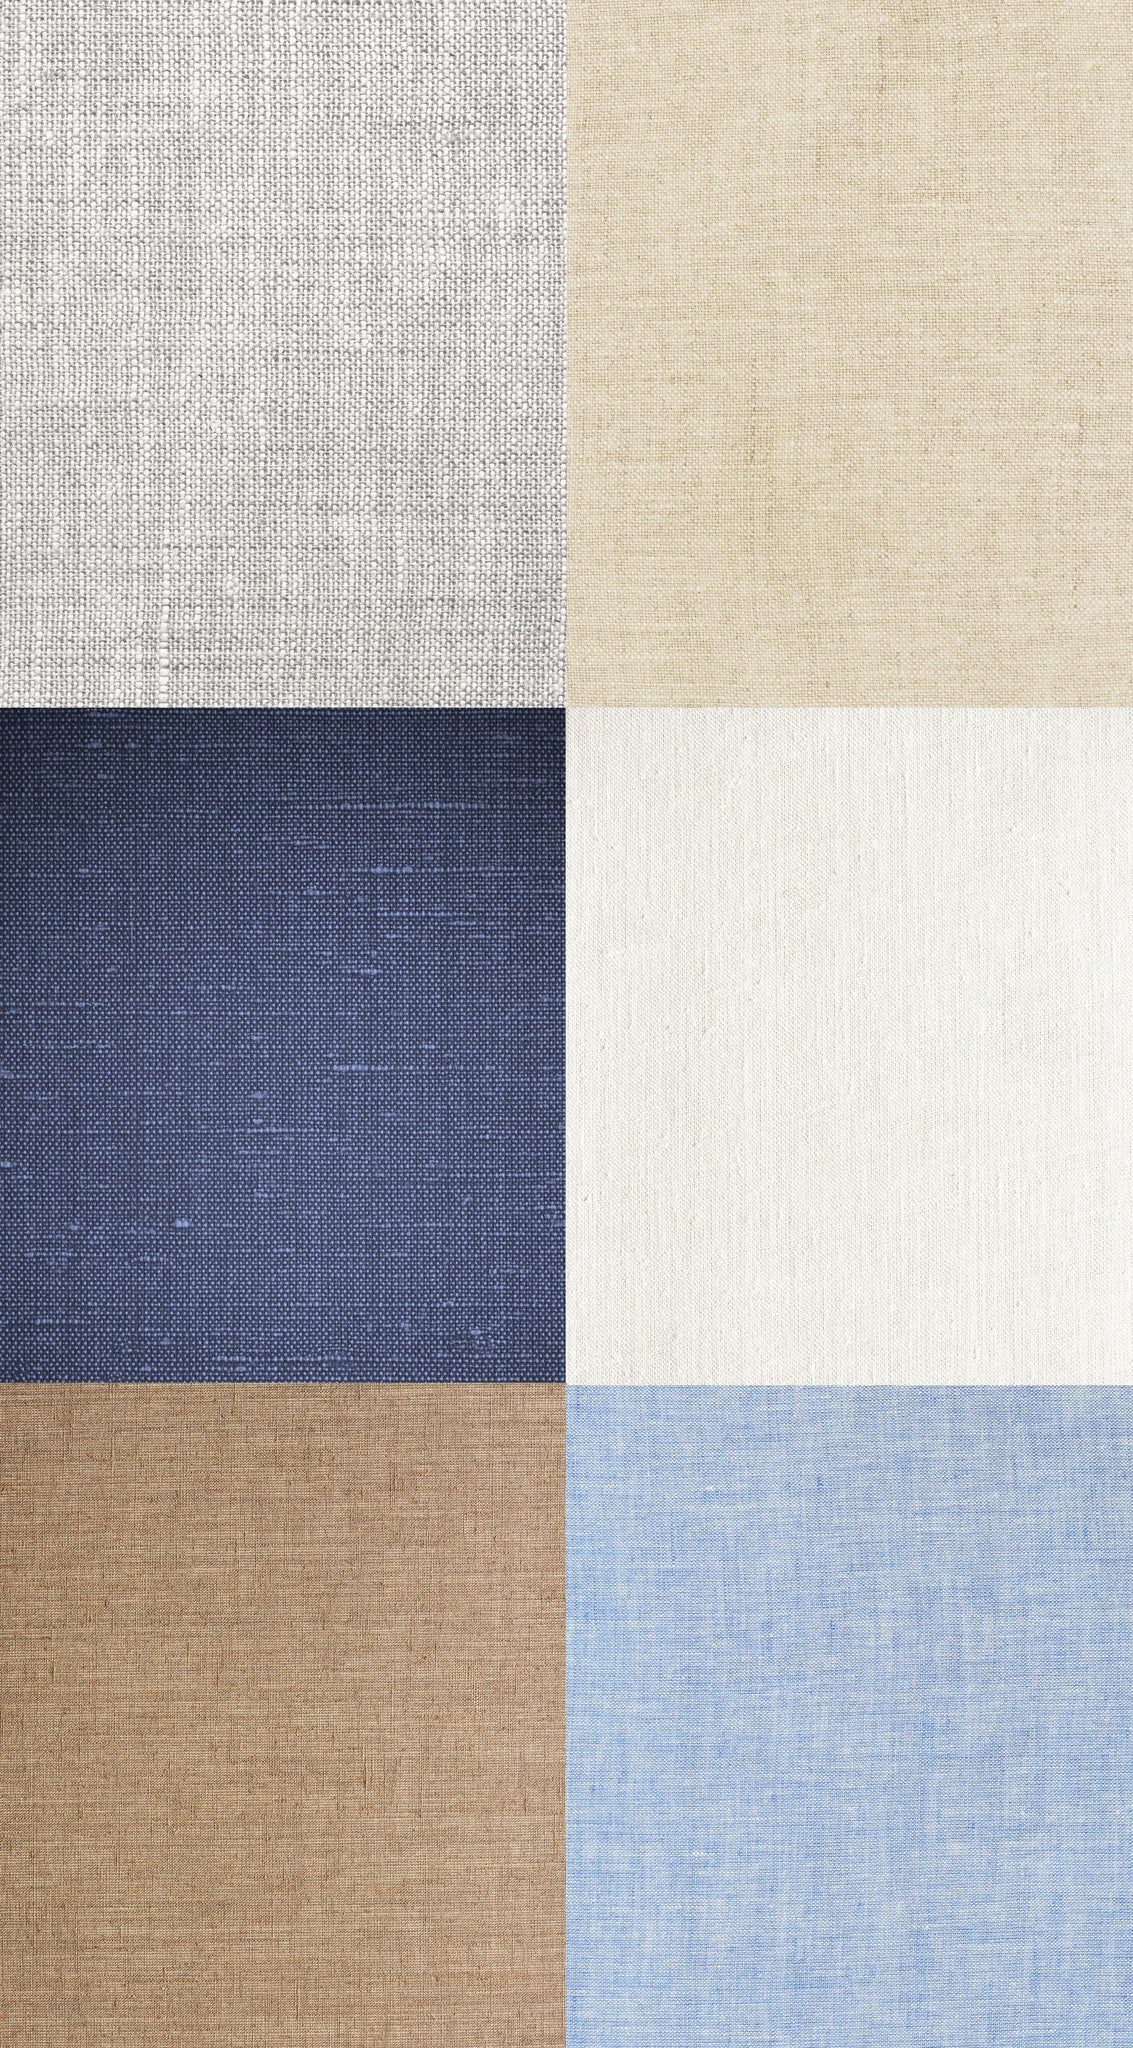 Linen Textures Backdrop